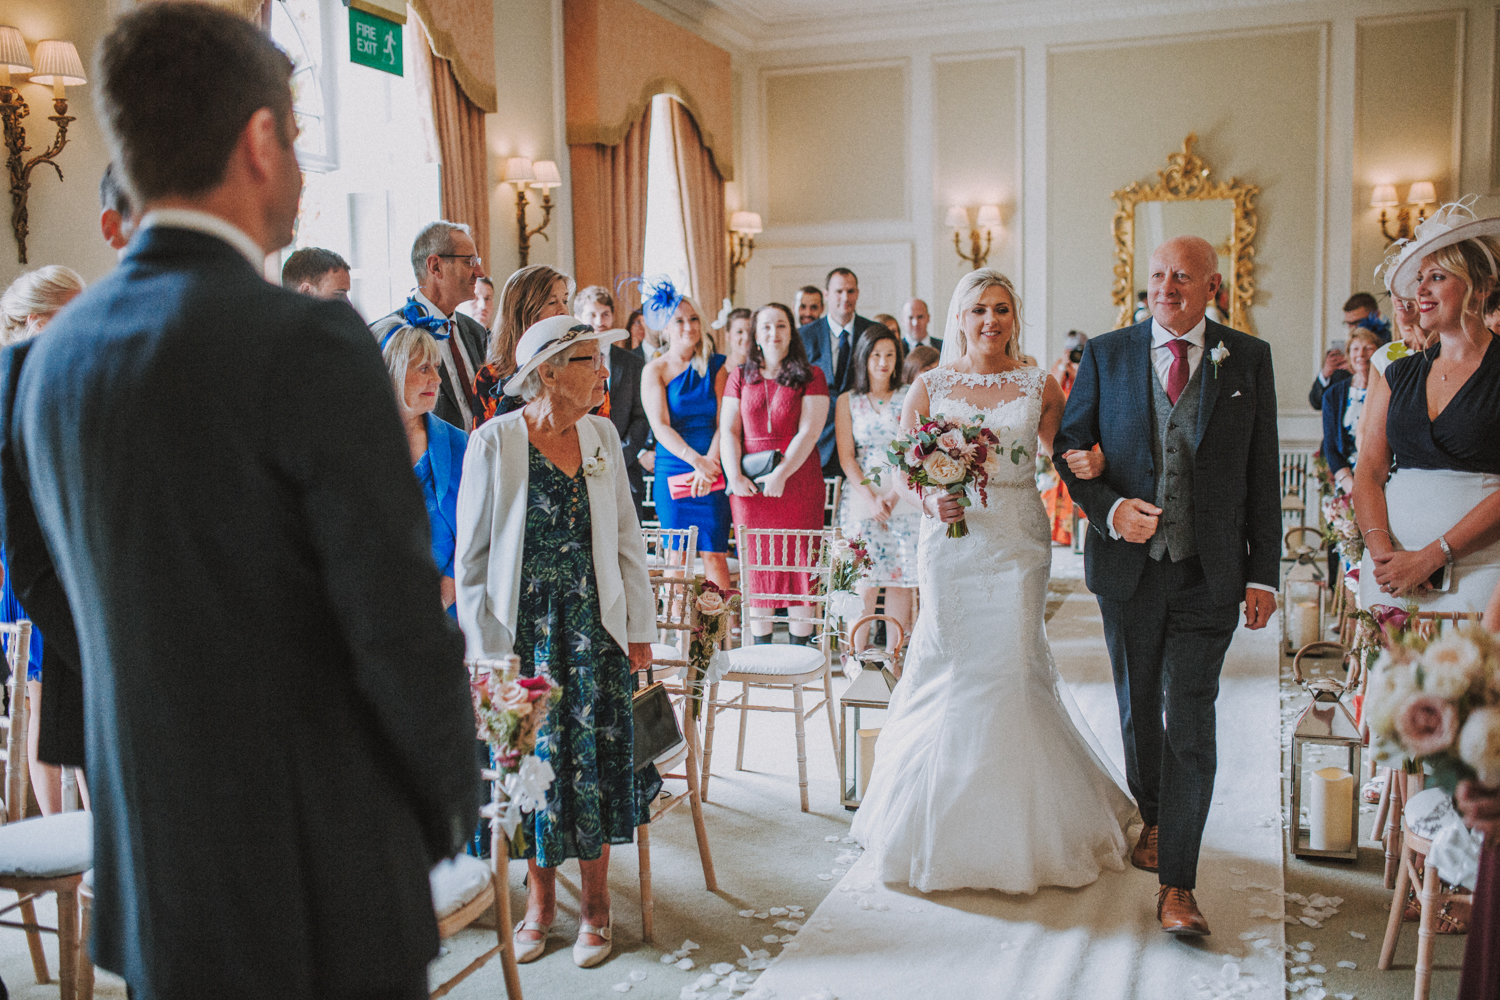 bowcliffe hall, wetherby, yorkshire wedding photography13.jpg